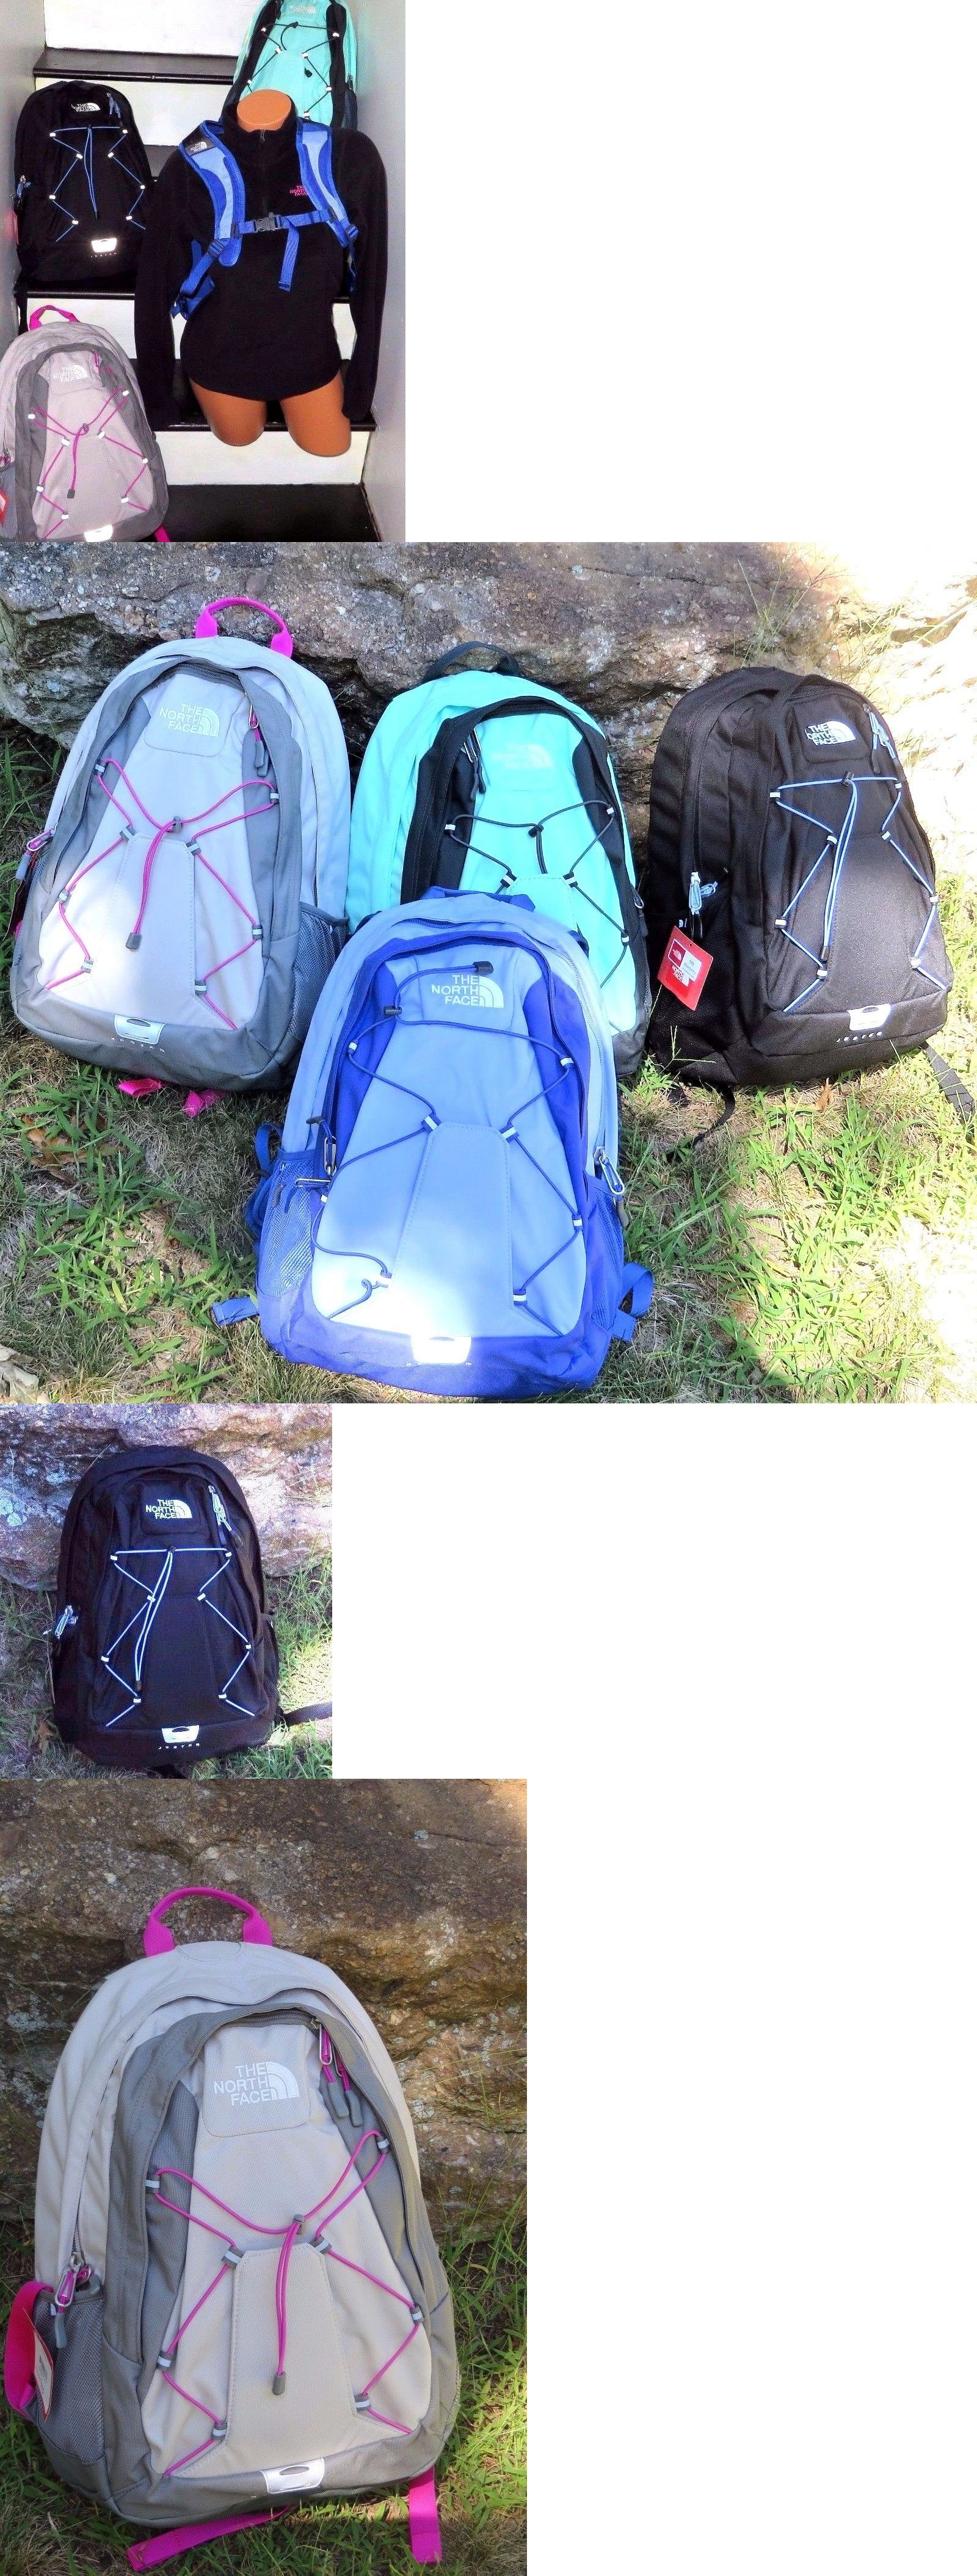 Bags And Backpacks 163537 The North Face Backpack Schoolbag Day Pack Gym Book Bag Hiking